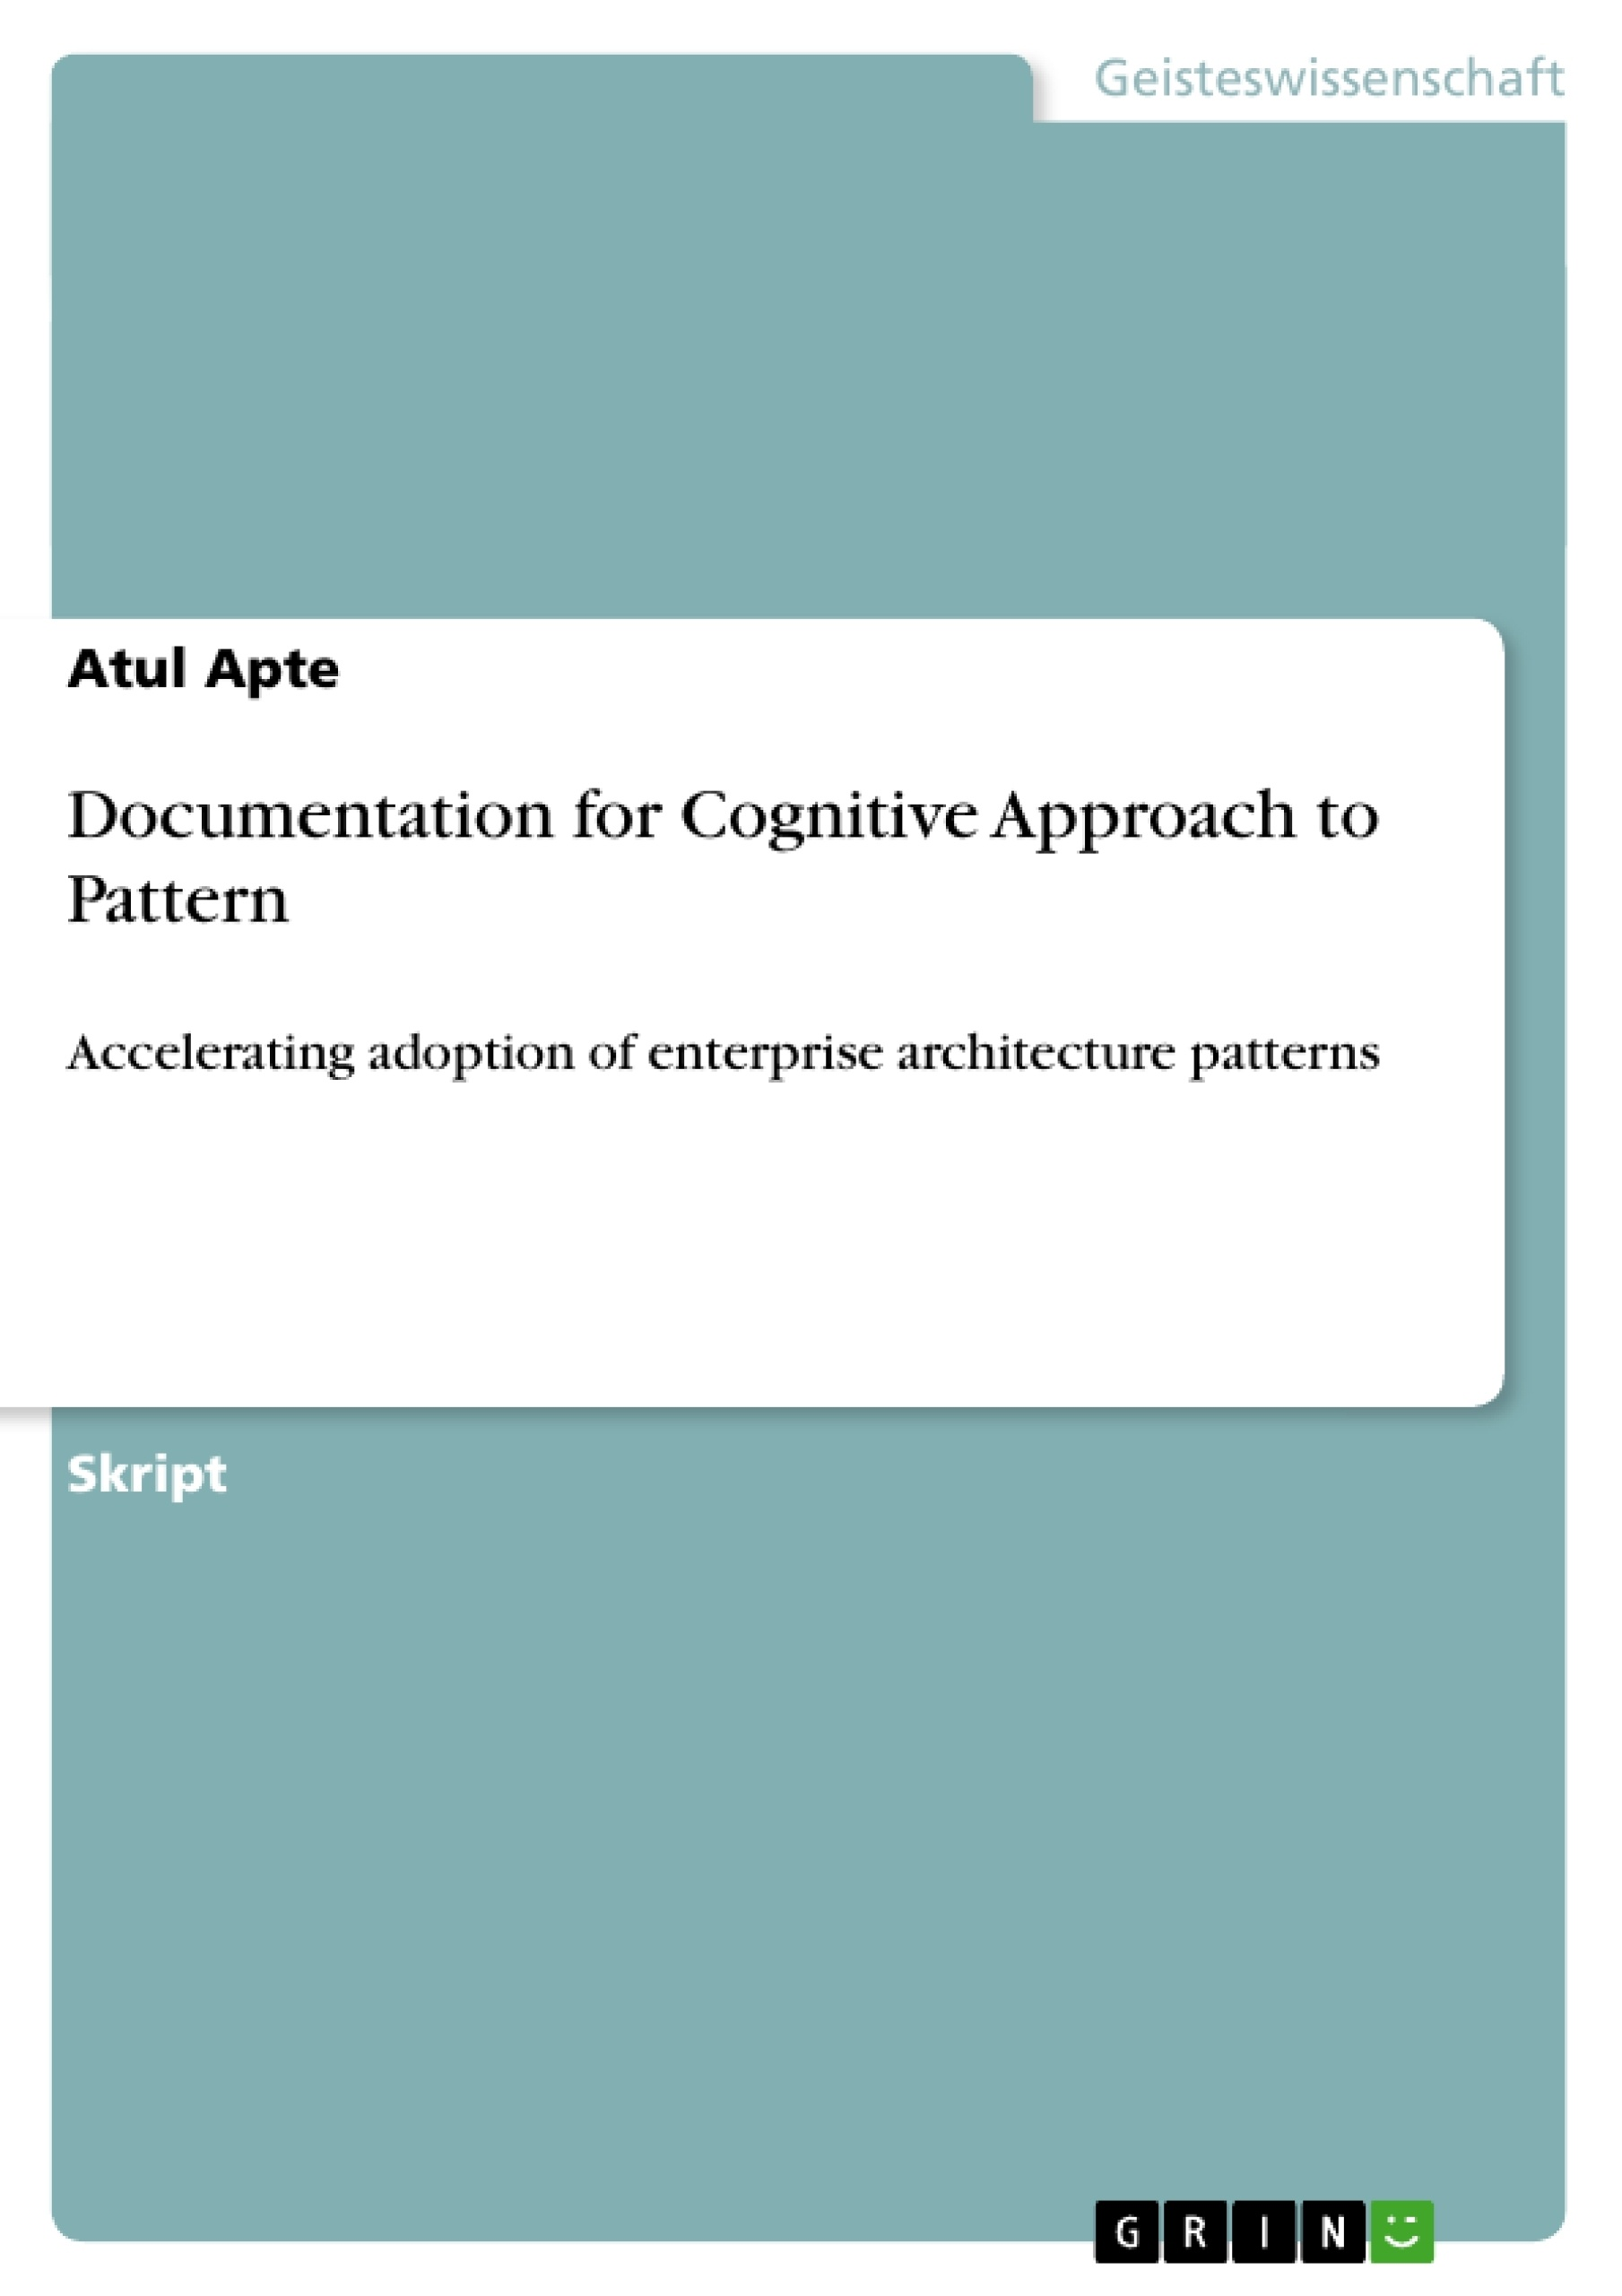 Titel: Documentation for Cognitive Approach to Pattern